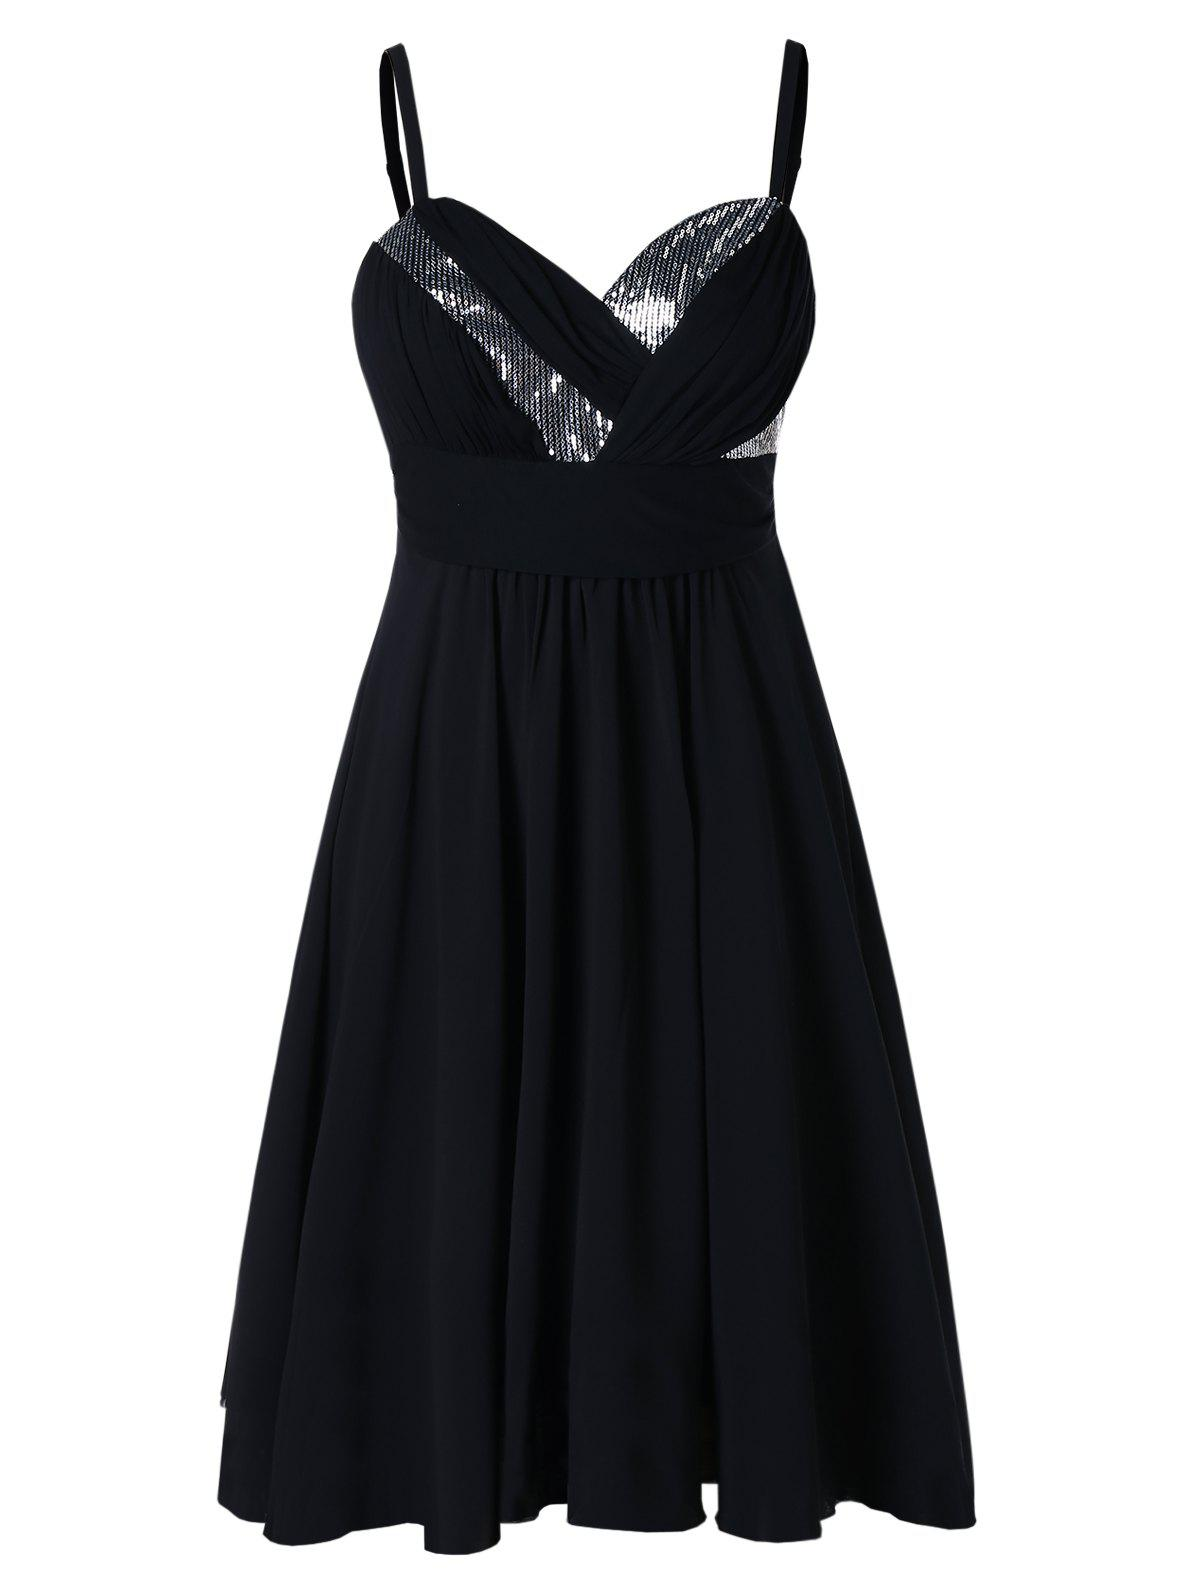 Trendy Spaghetti Strap Plus Size Sequin Embellished A Line Dress